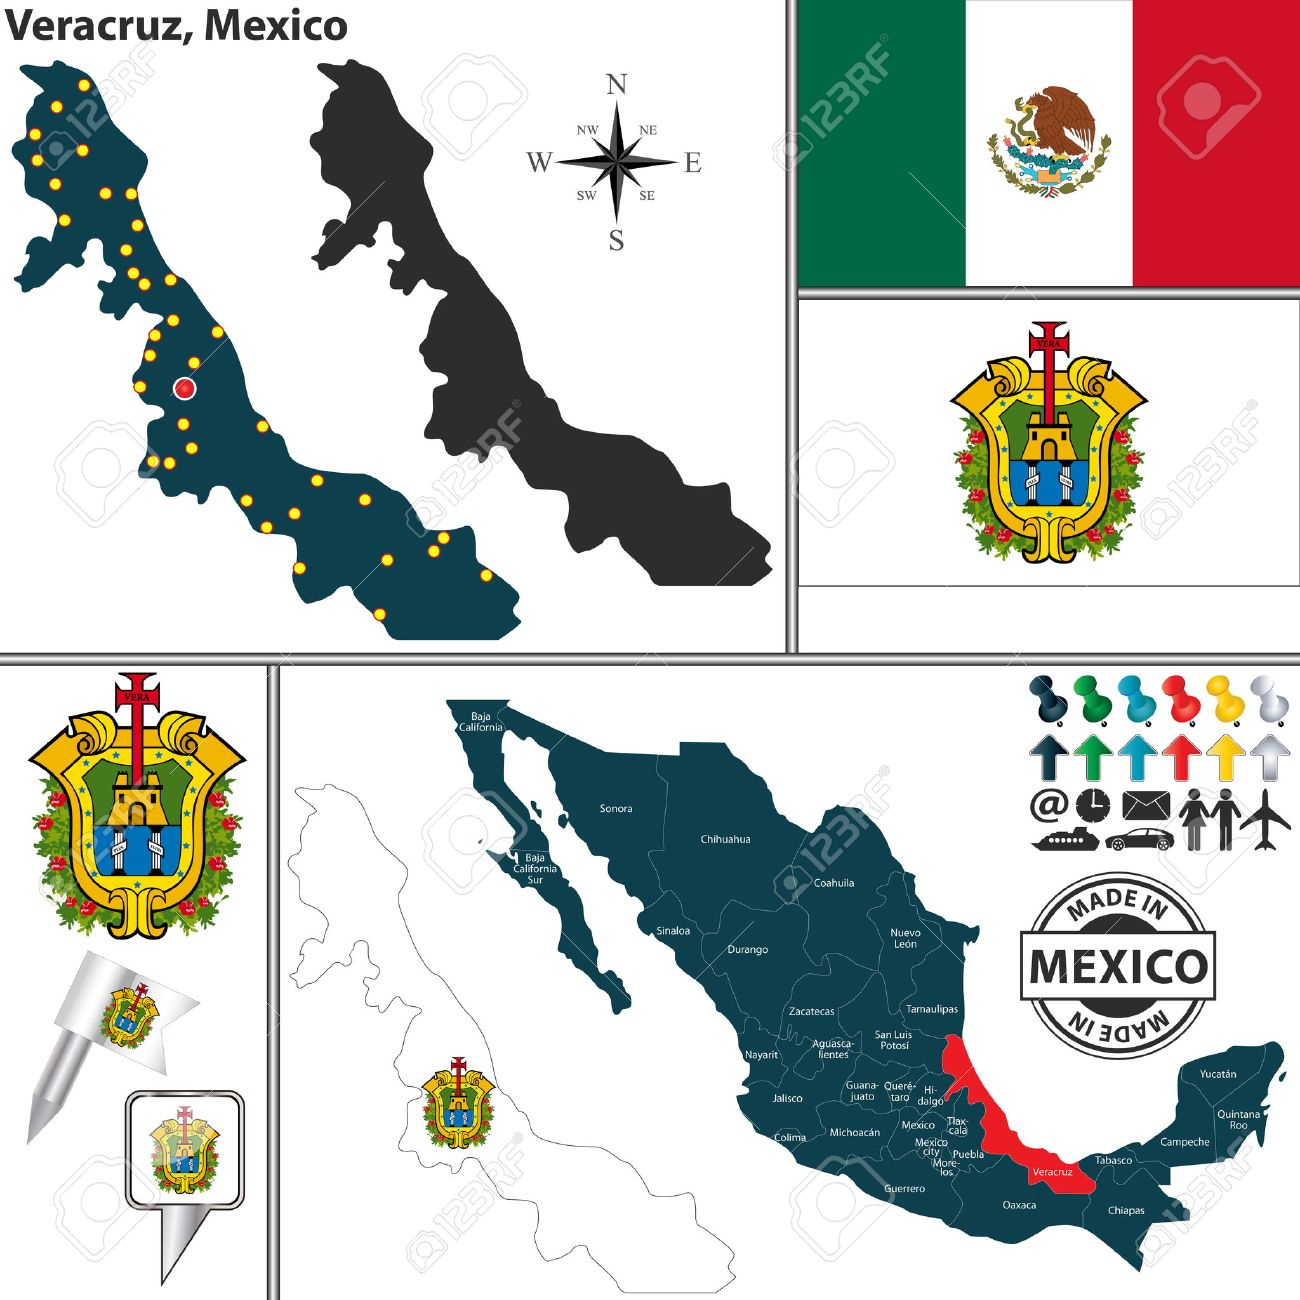 Vector Map Of State Veracruz With Coat Of Arms And Location On